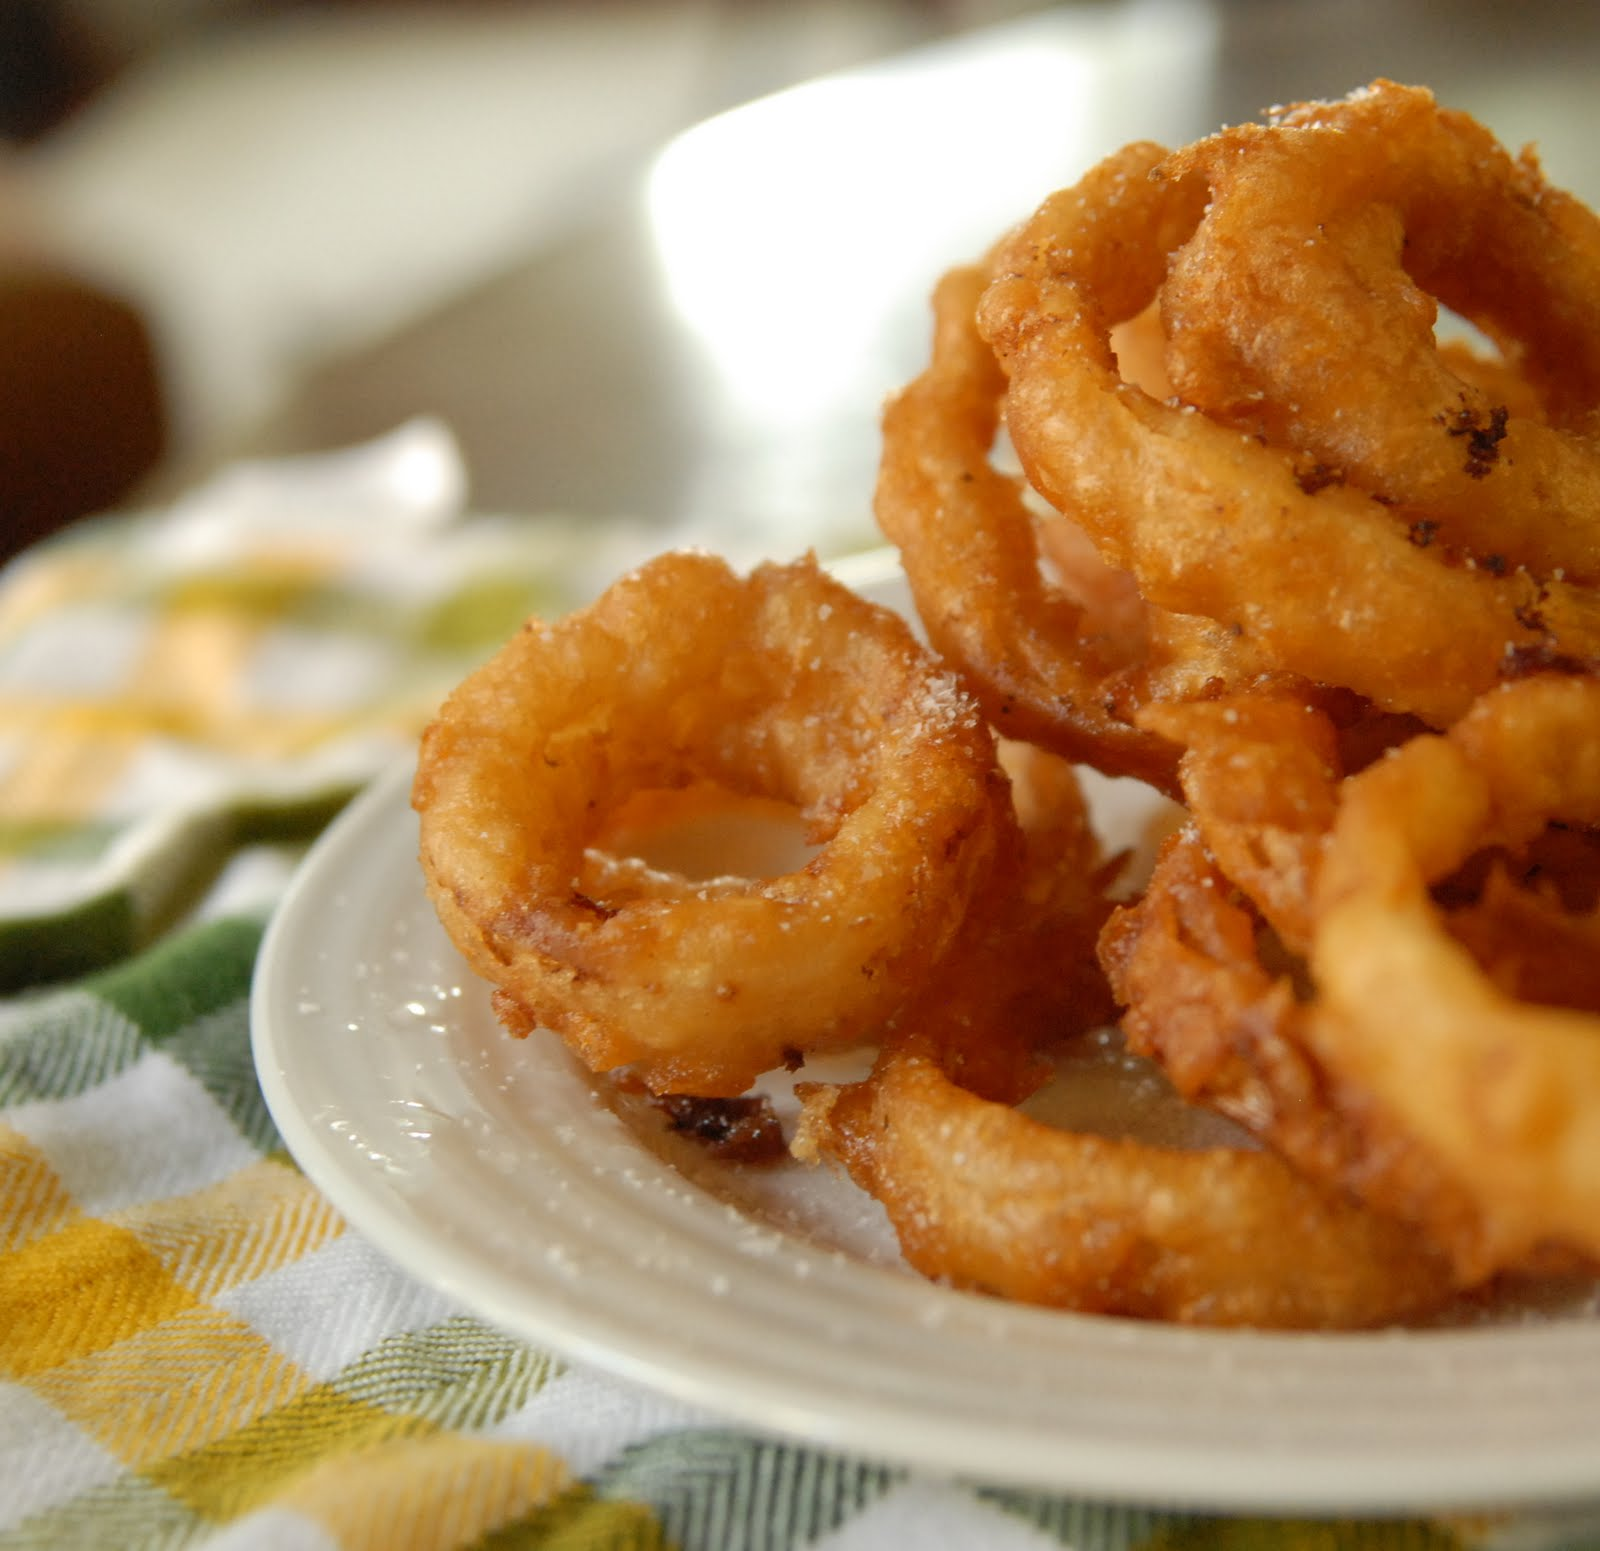 ... onion rings share crispy barbecue flavored onion onion rings and